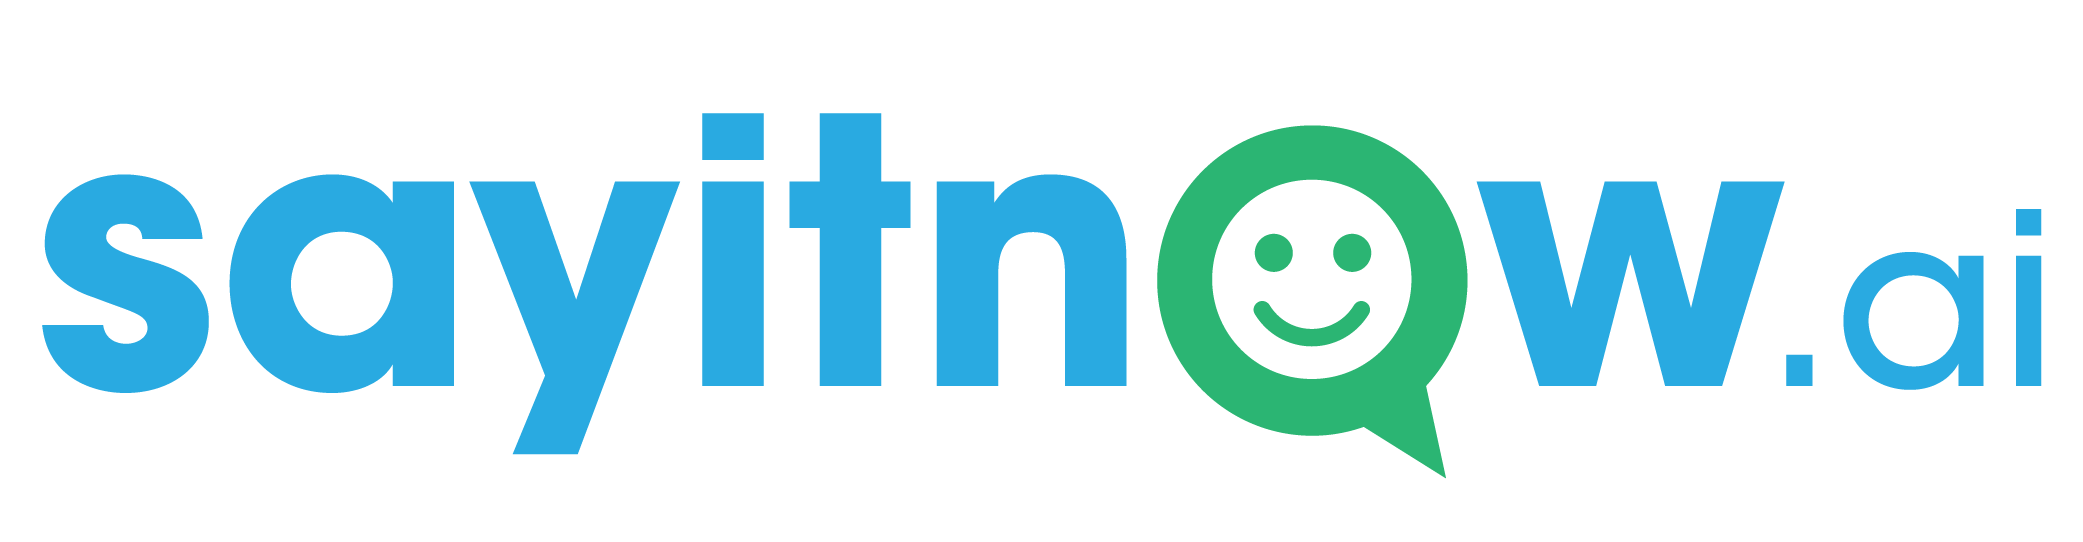 Say It Now - Award winning, developer of Voice Assistants and Messenger Bots, a chatbot developer